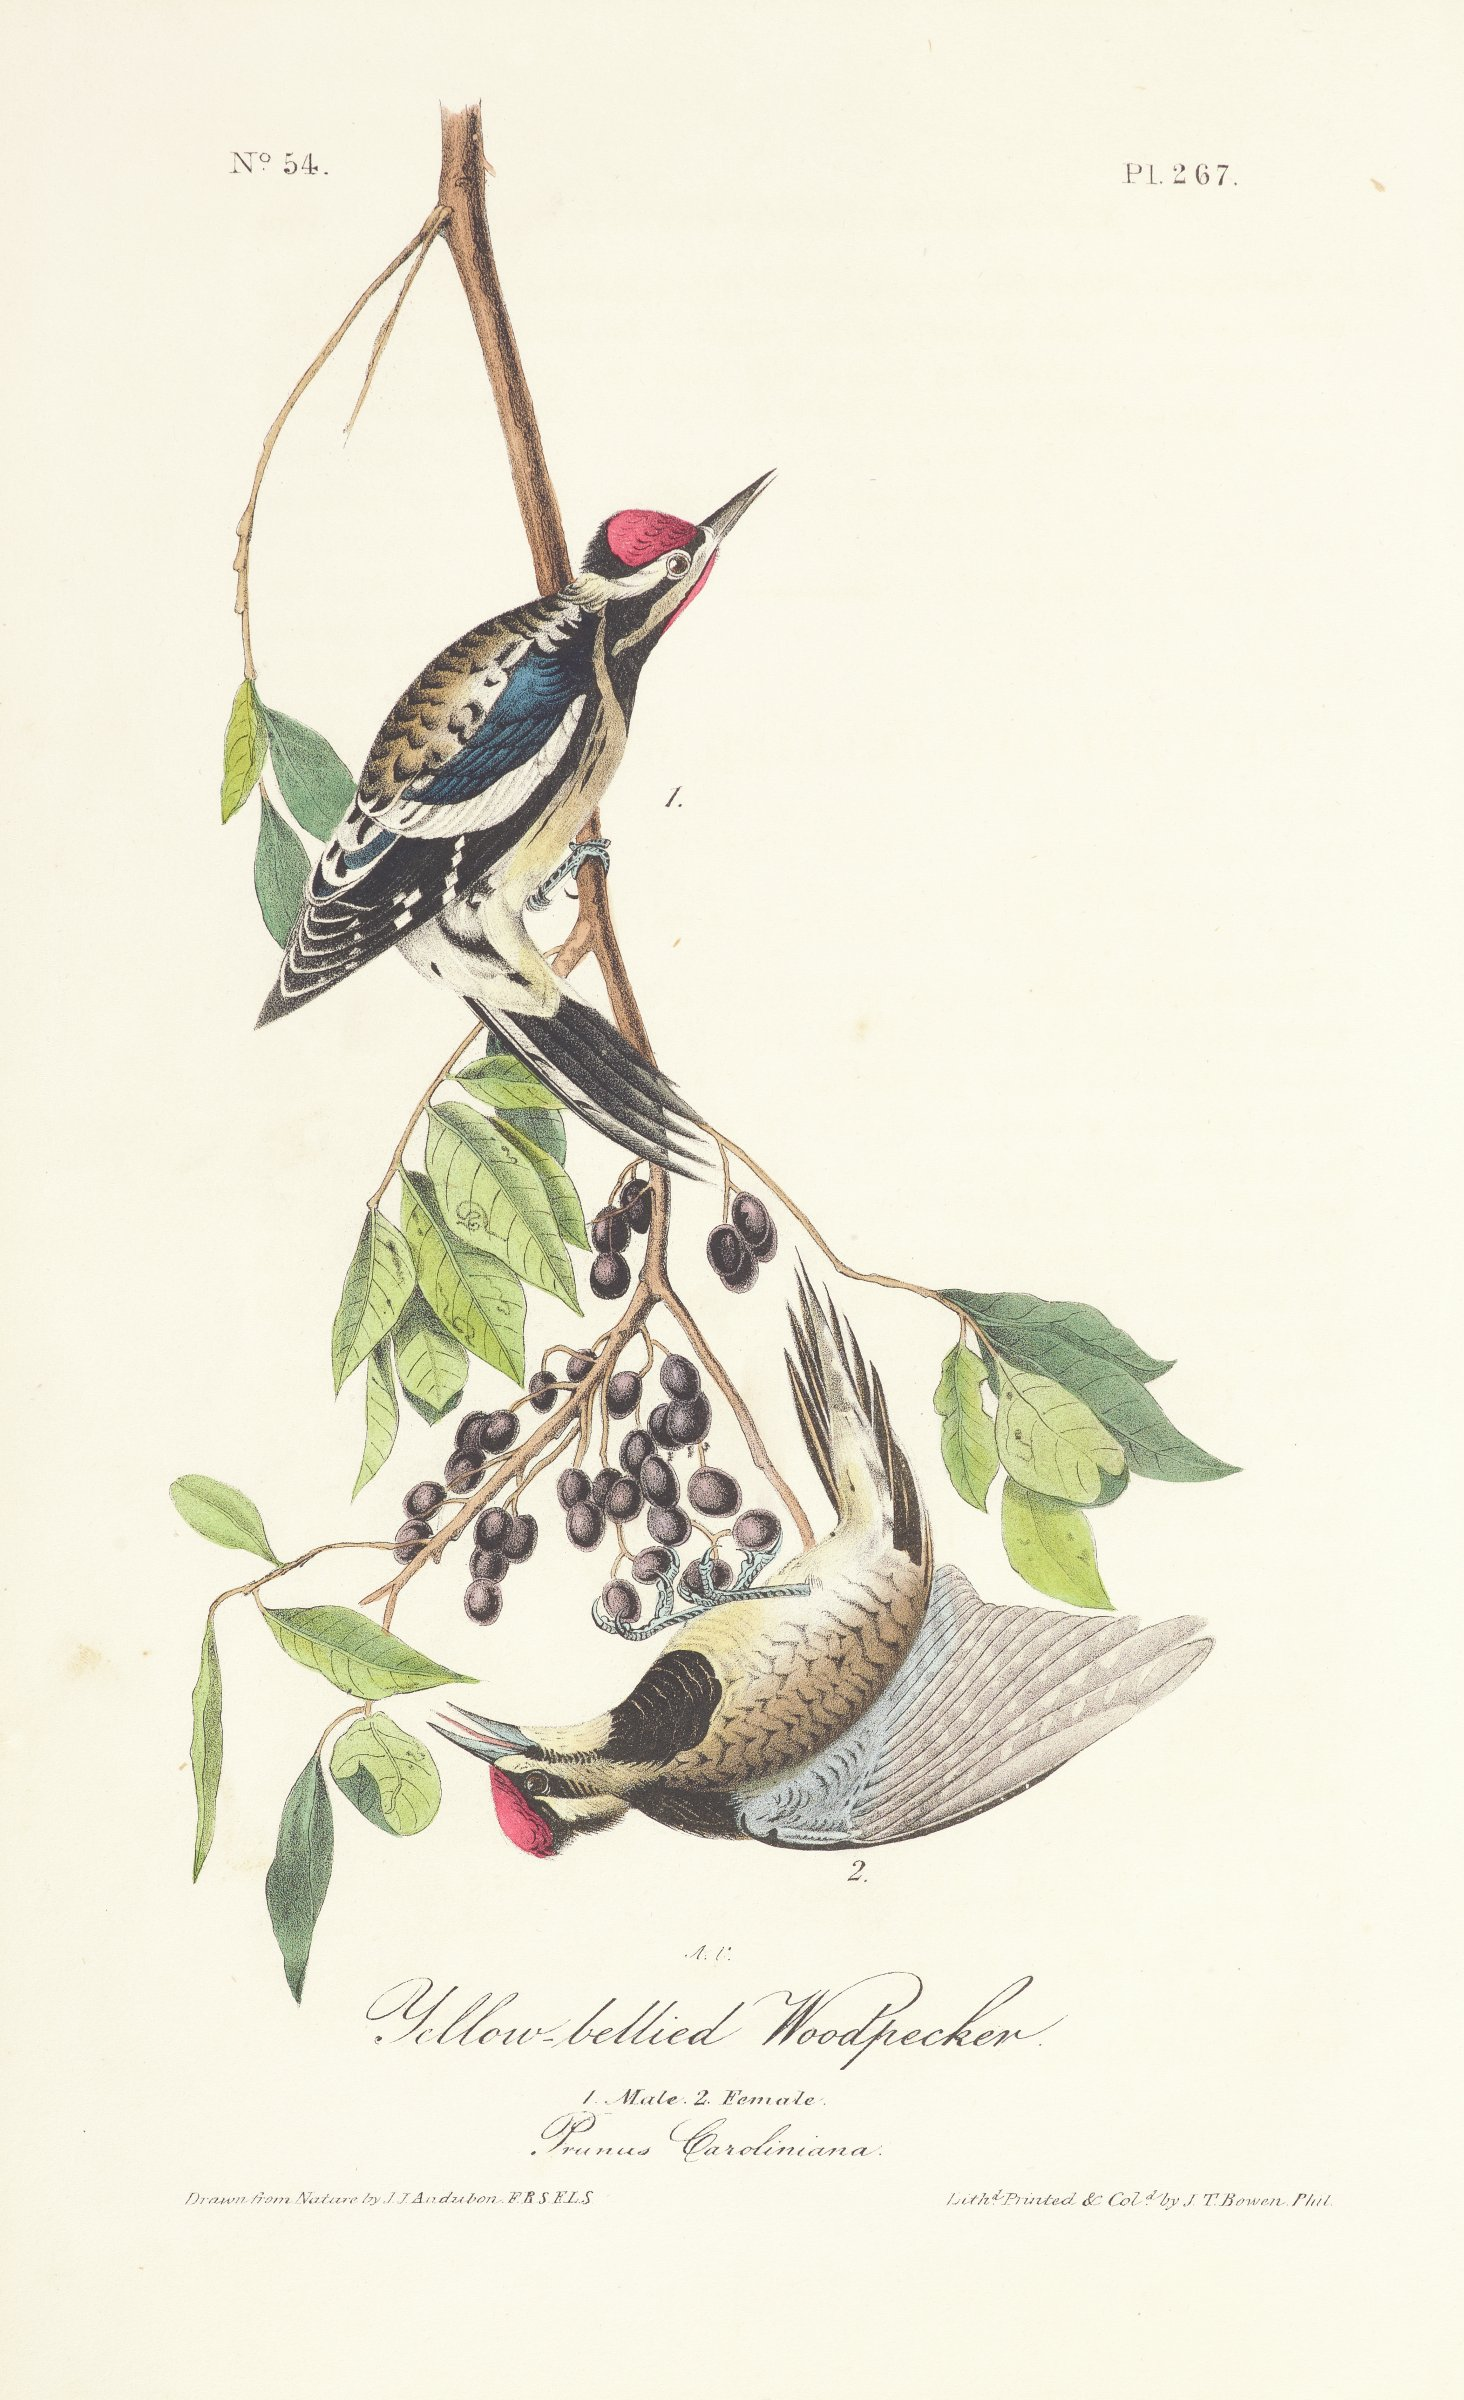 Two woodpeckers are depicted on a thin branch that produces pointed oval leaves and black berries. The woodpeckers are characterized by red feathers on their heads and brown, black, and white feathers on their bodies. The upper woodpecker also contains red feathers on its neck.